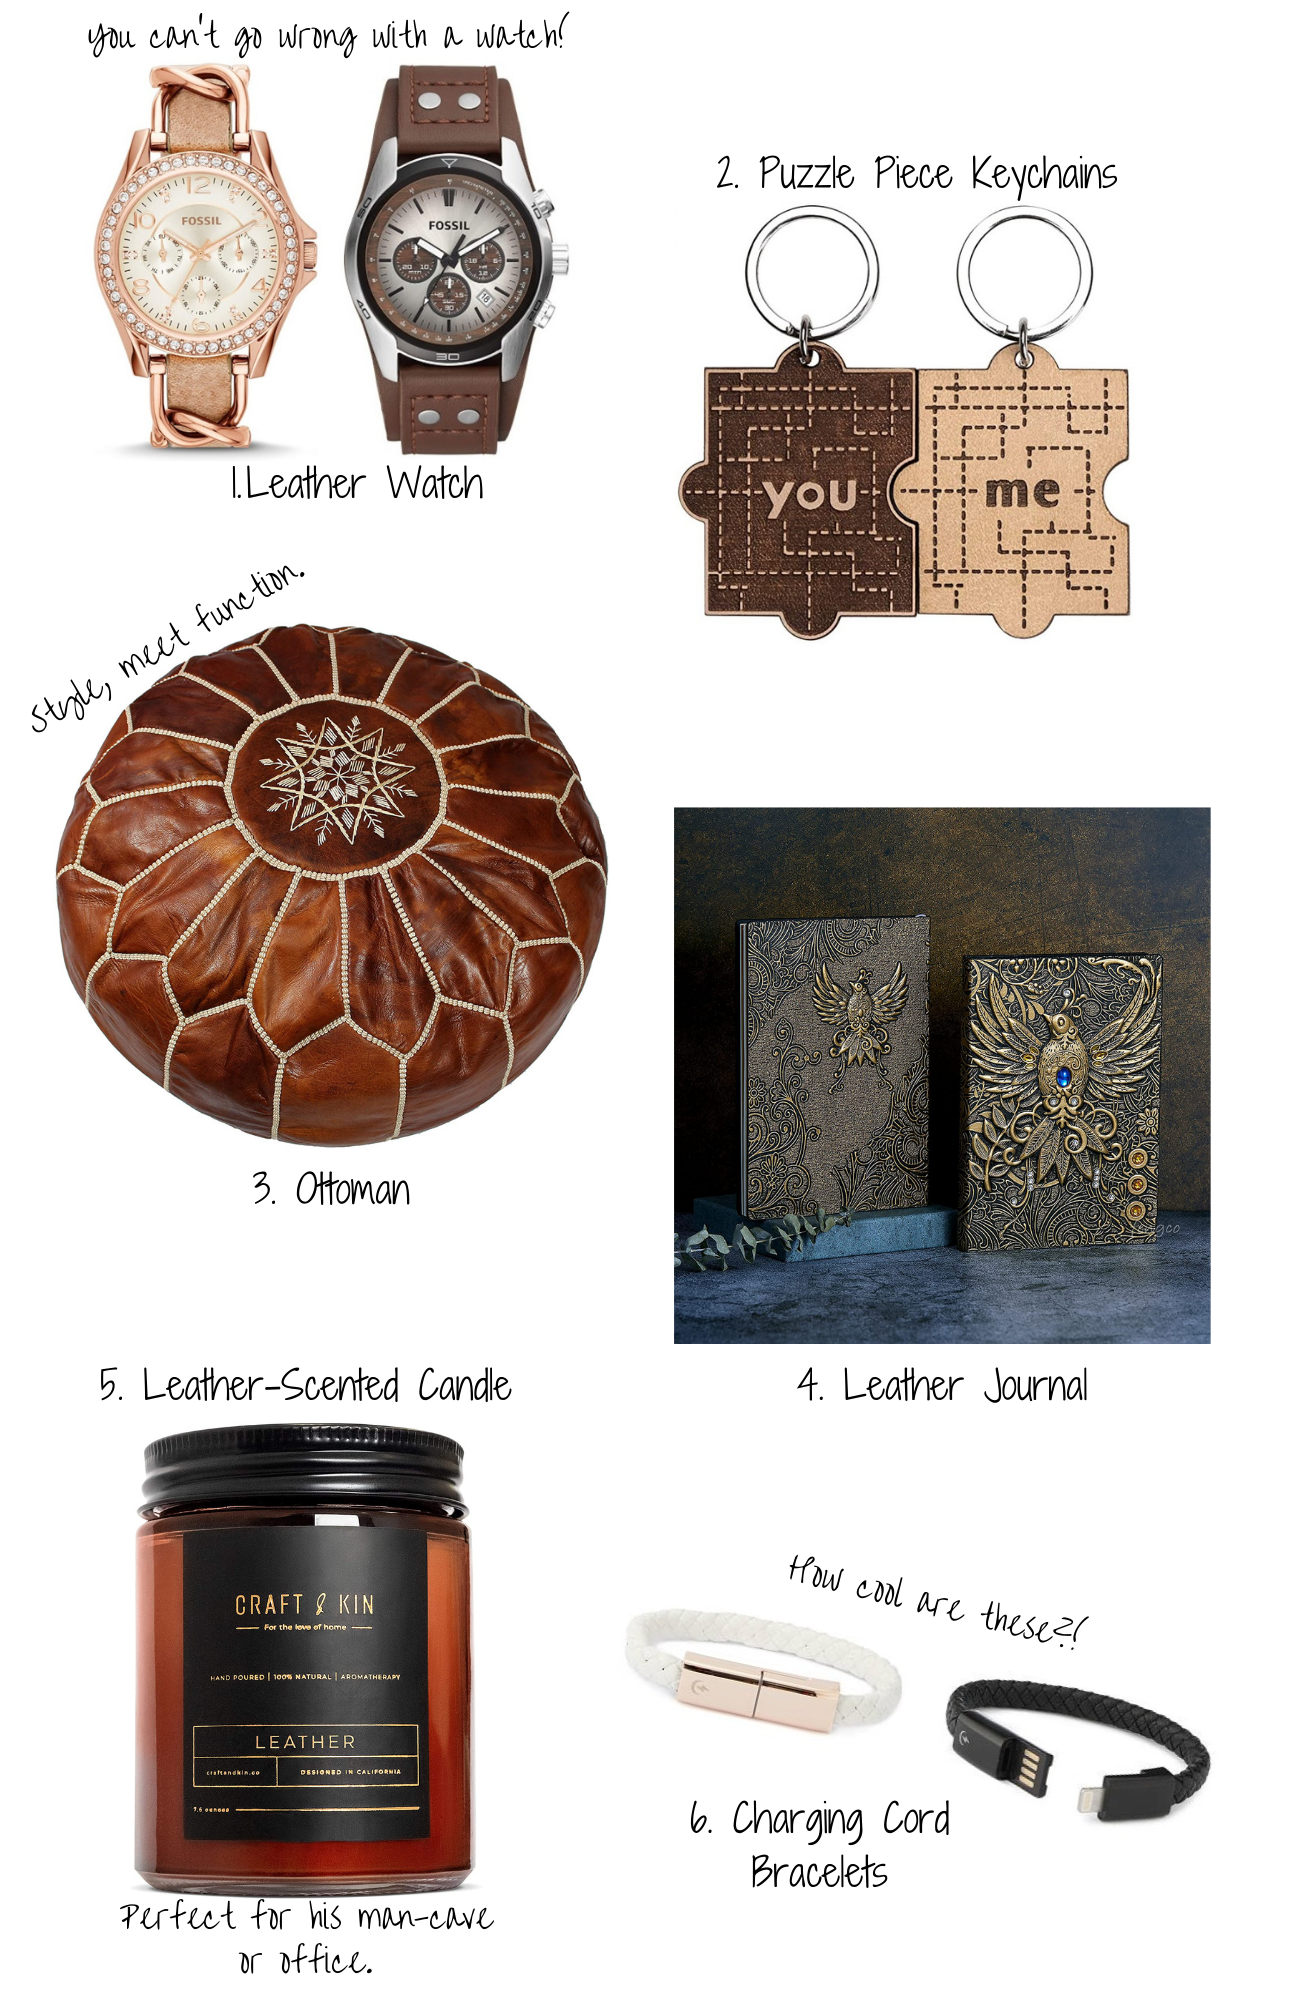 9th-wedding-anniversary-leather-gift-ideas